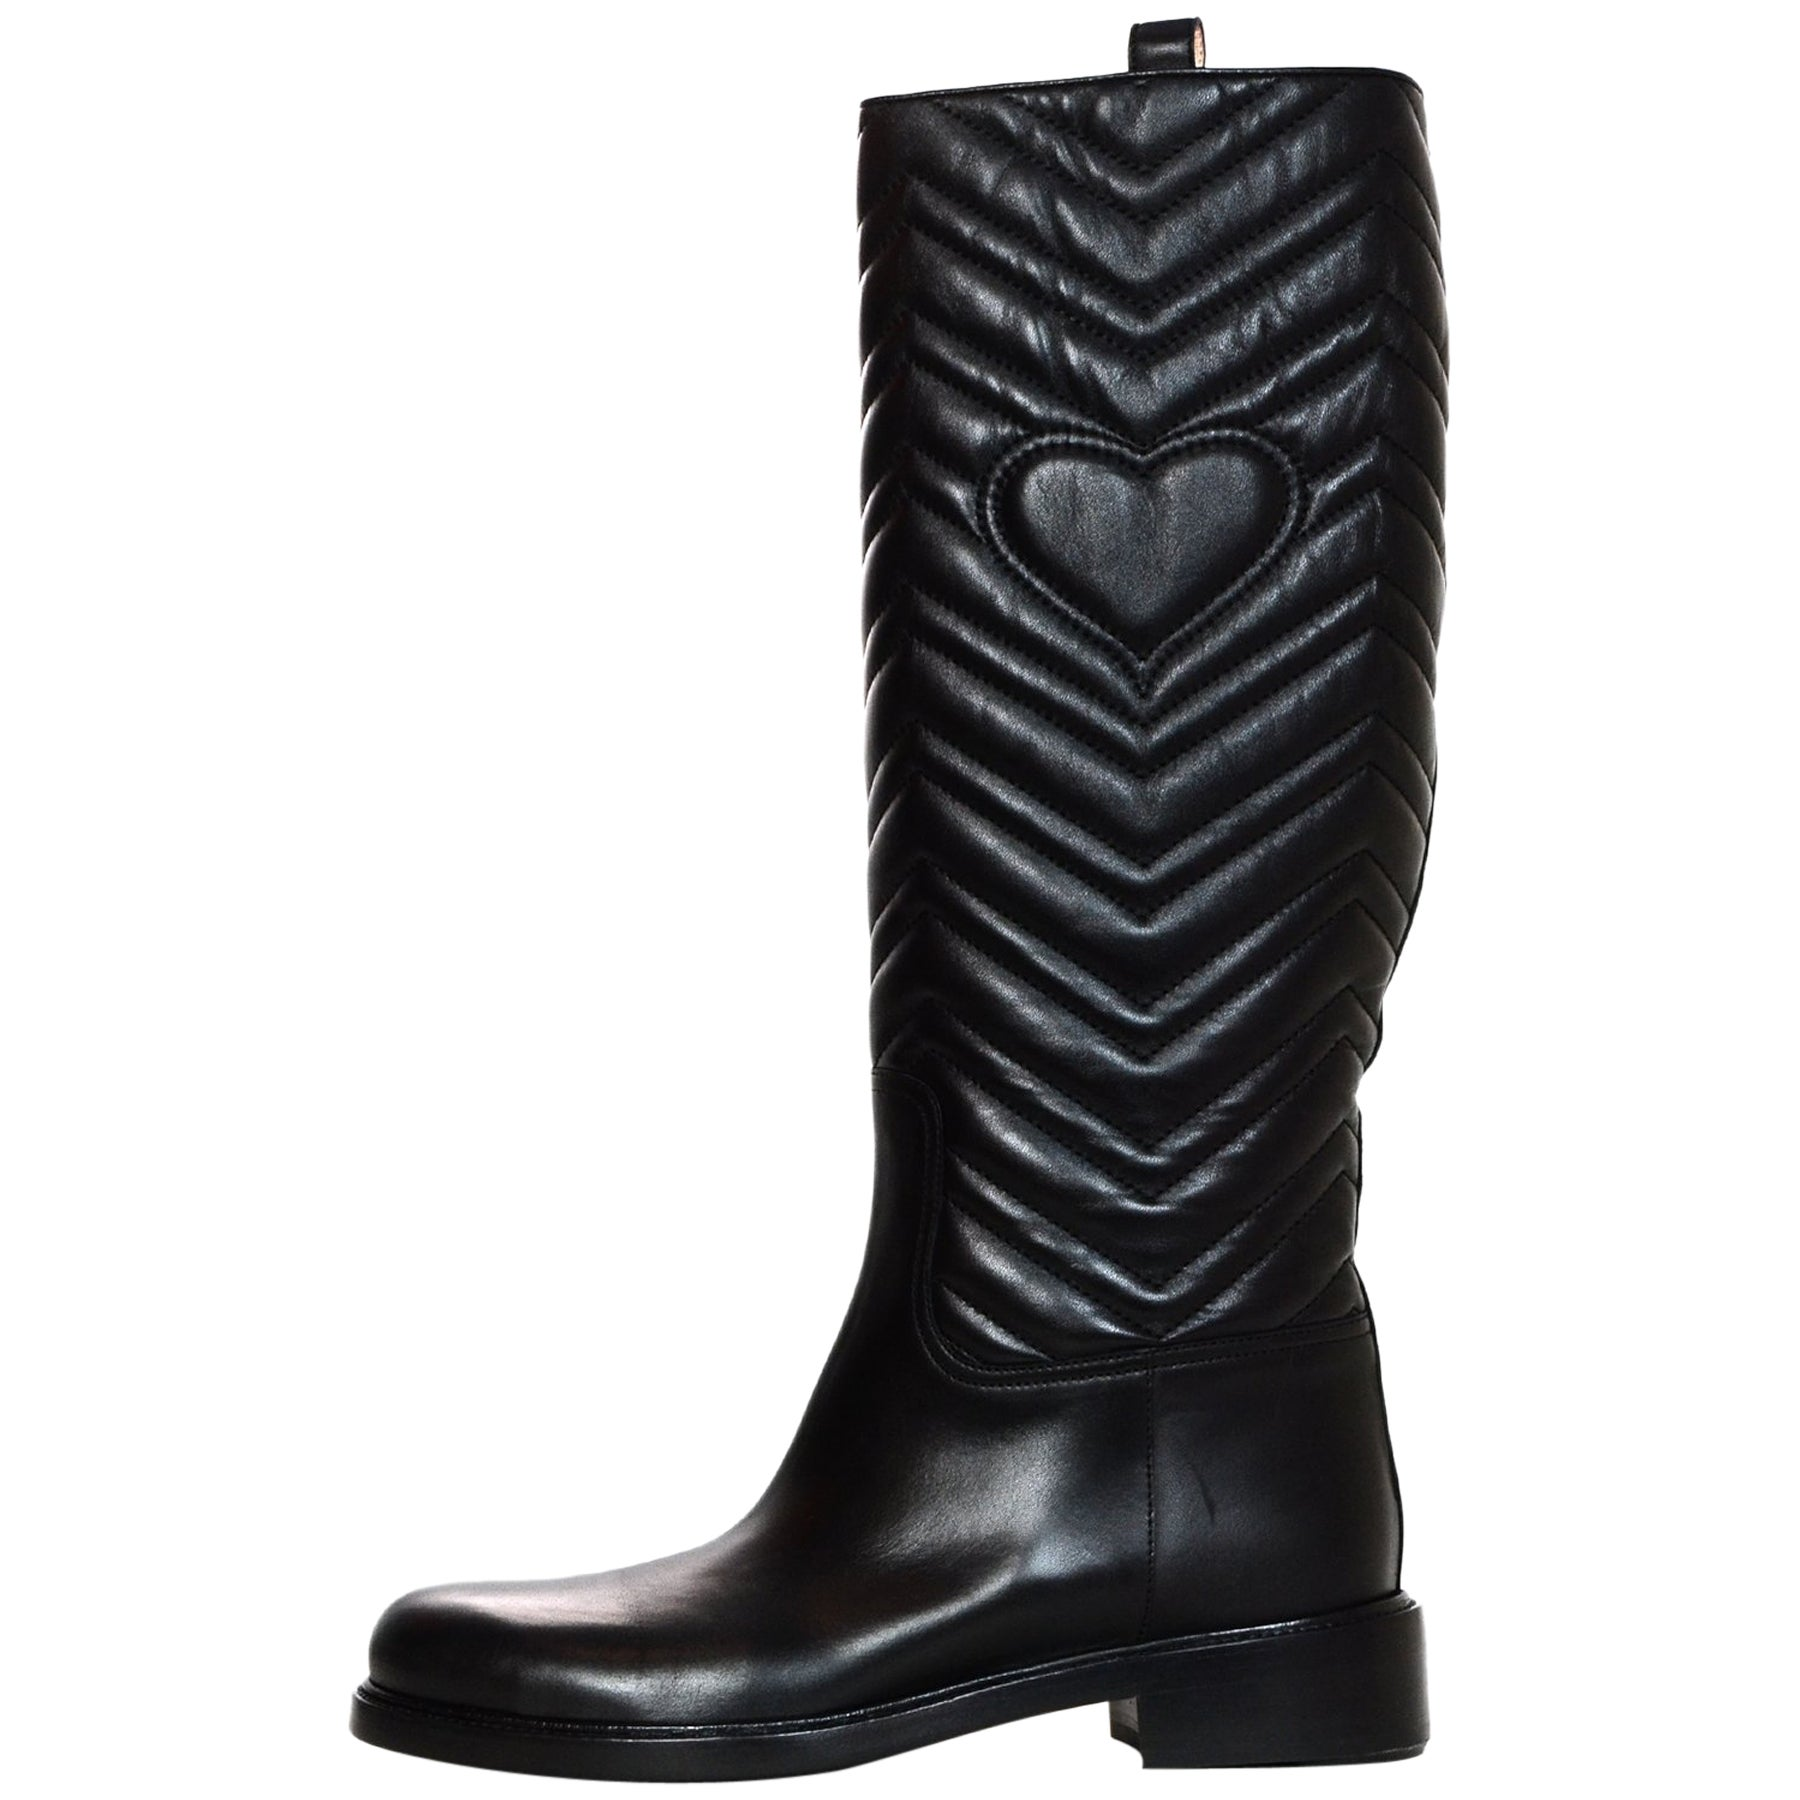 638428f4d41 Gucci Black Matlasse Quilted Nappa Charlotte Knee High Riding Boots Sz 41  For Sale at 1stdibs